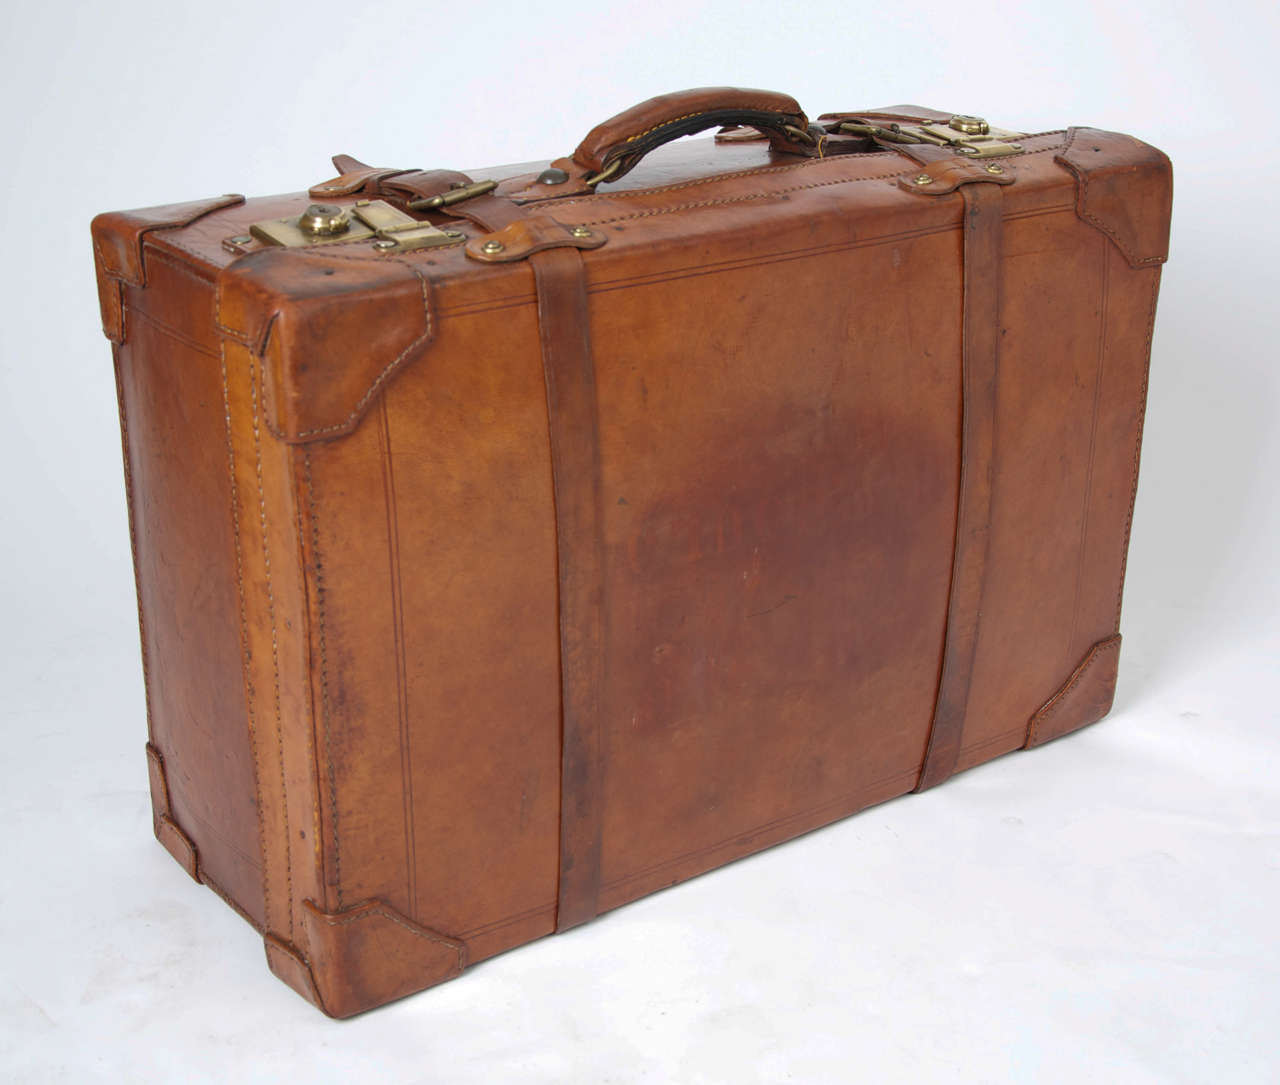 5a47cd2d5 Brass 19th C. Leather SUITCASE, English, Very High Quality For Sale